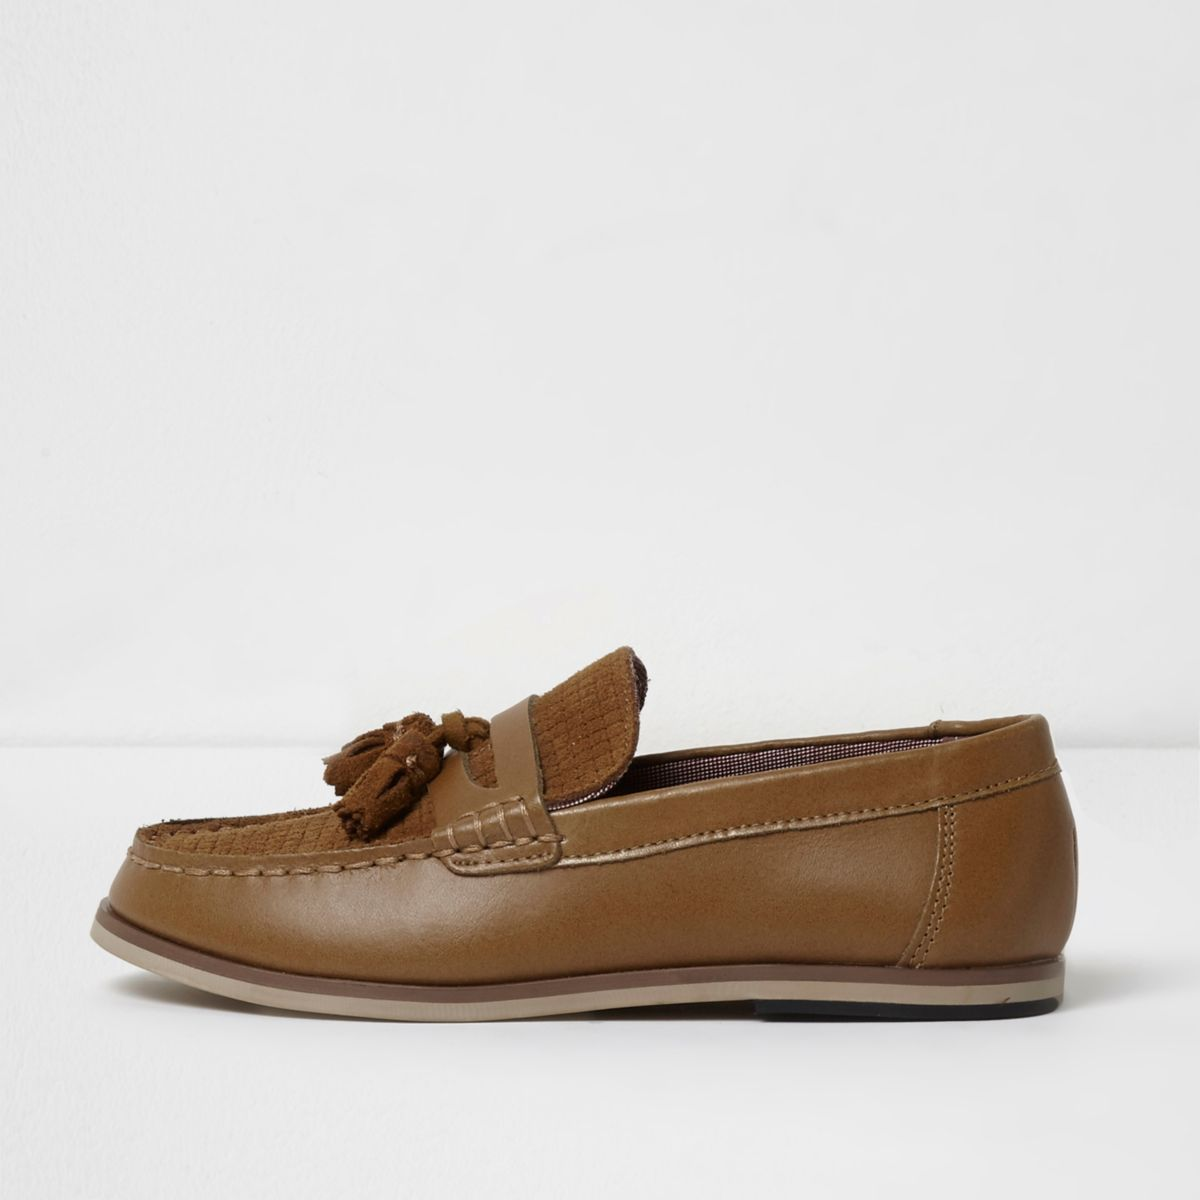 Boys tan leather and suede tassel loafers